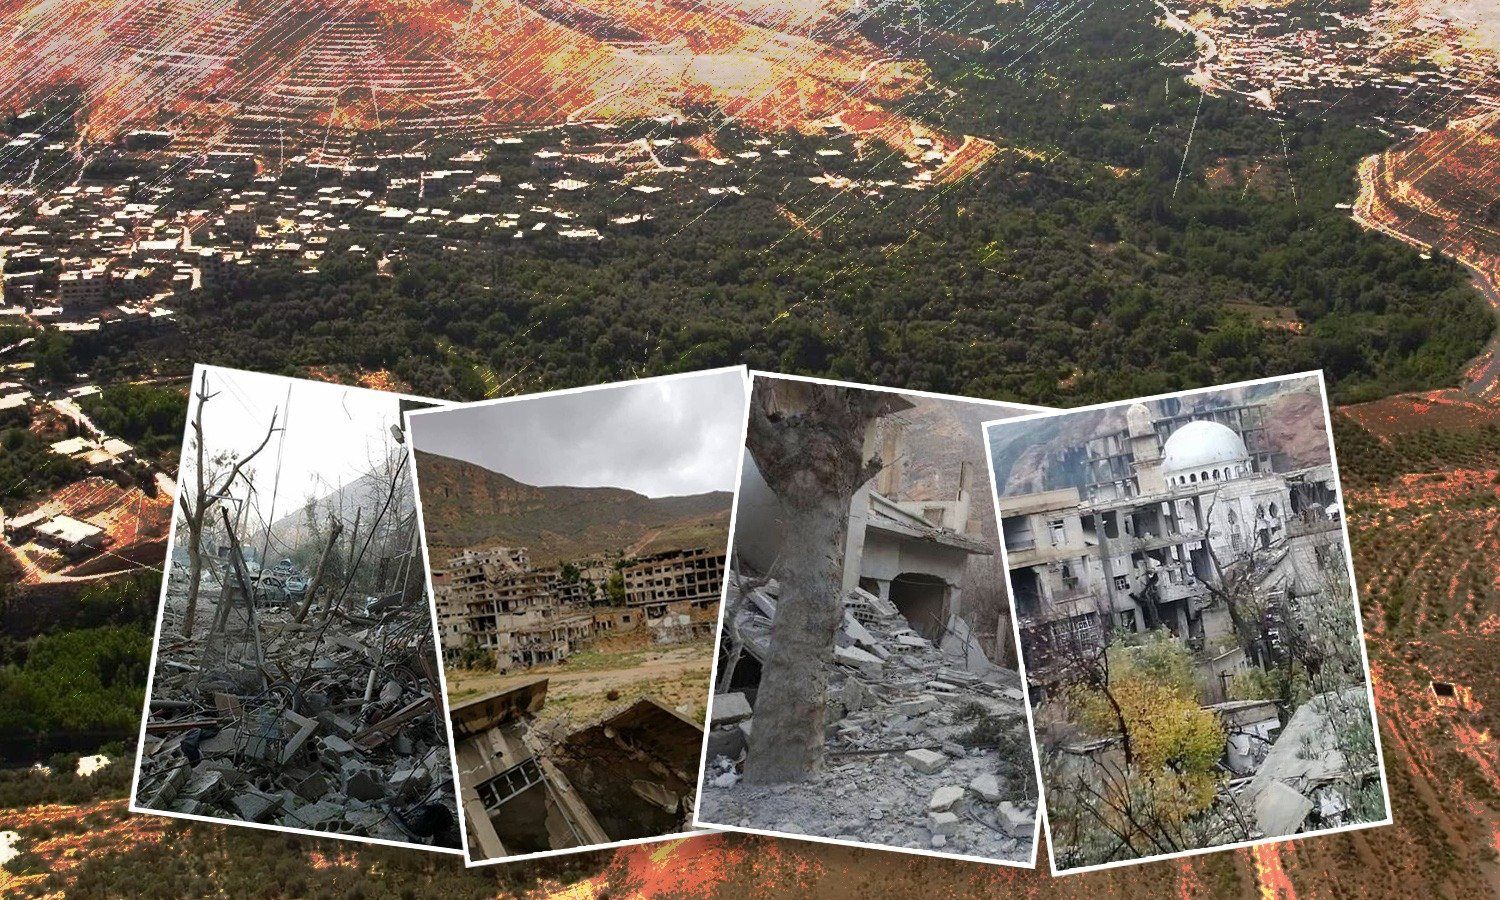 The destruction in Wadi Barada villages in Rif Dimashq governorate -edited by Enab Baladi - 2021